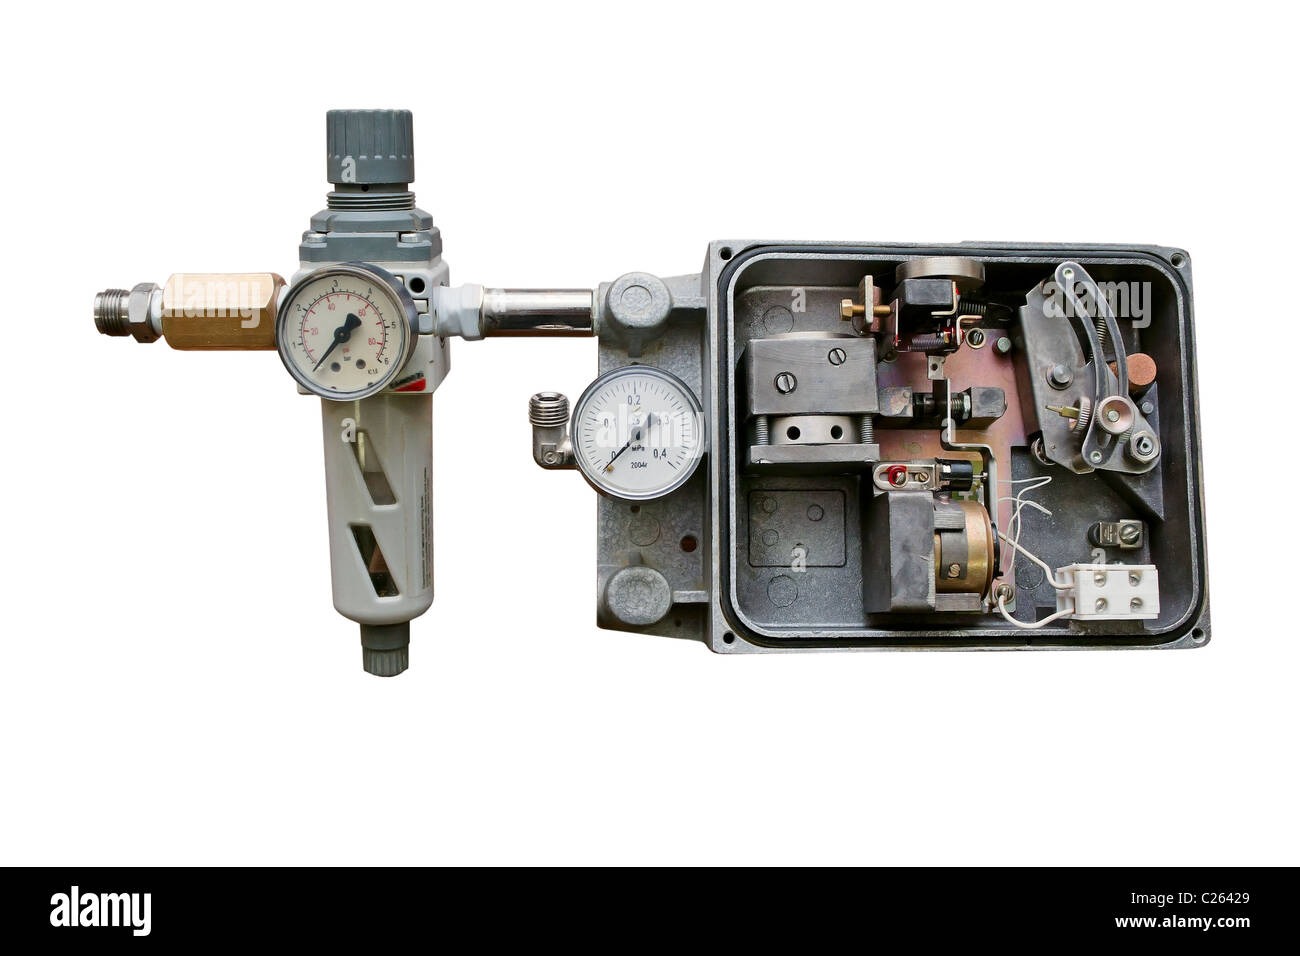 Mechanism to control the pneumatic valve. Isolated on white background. - Stock Image